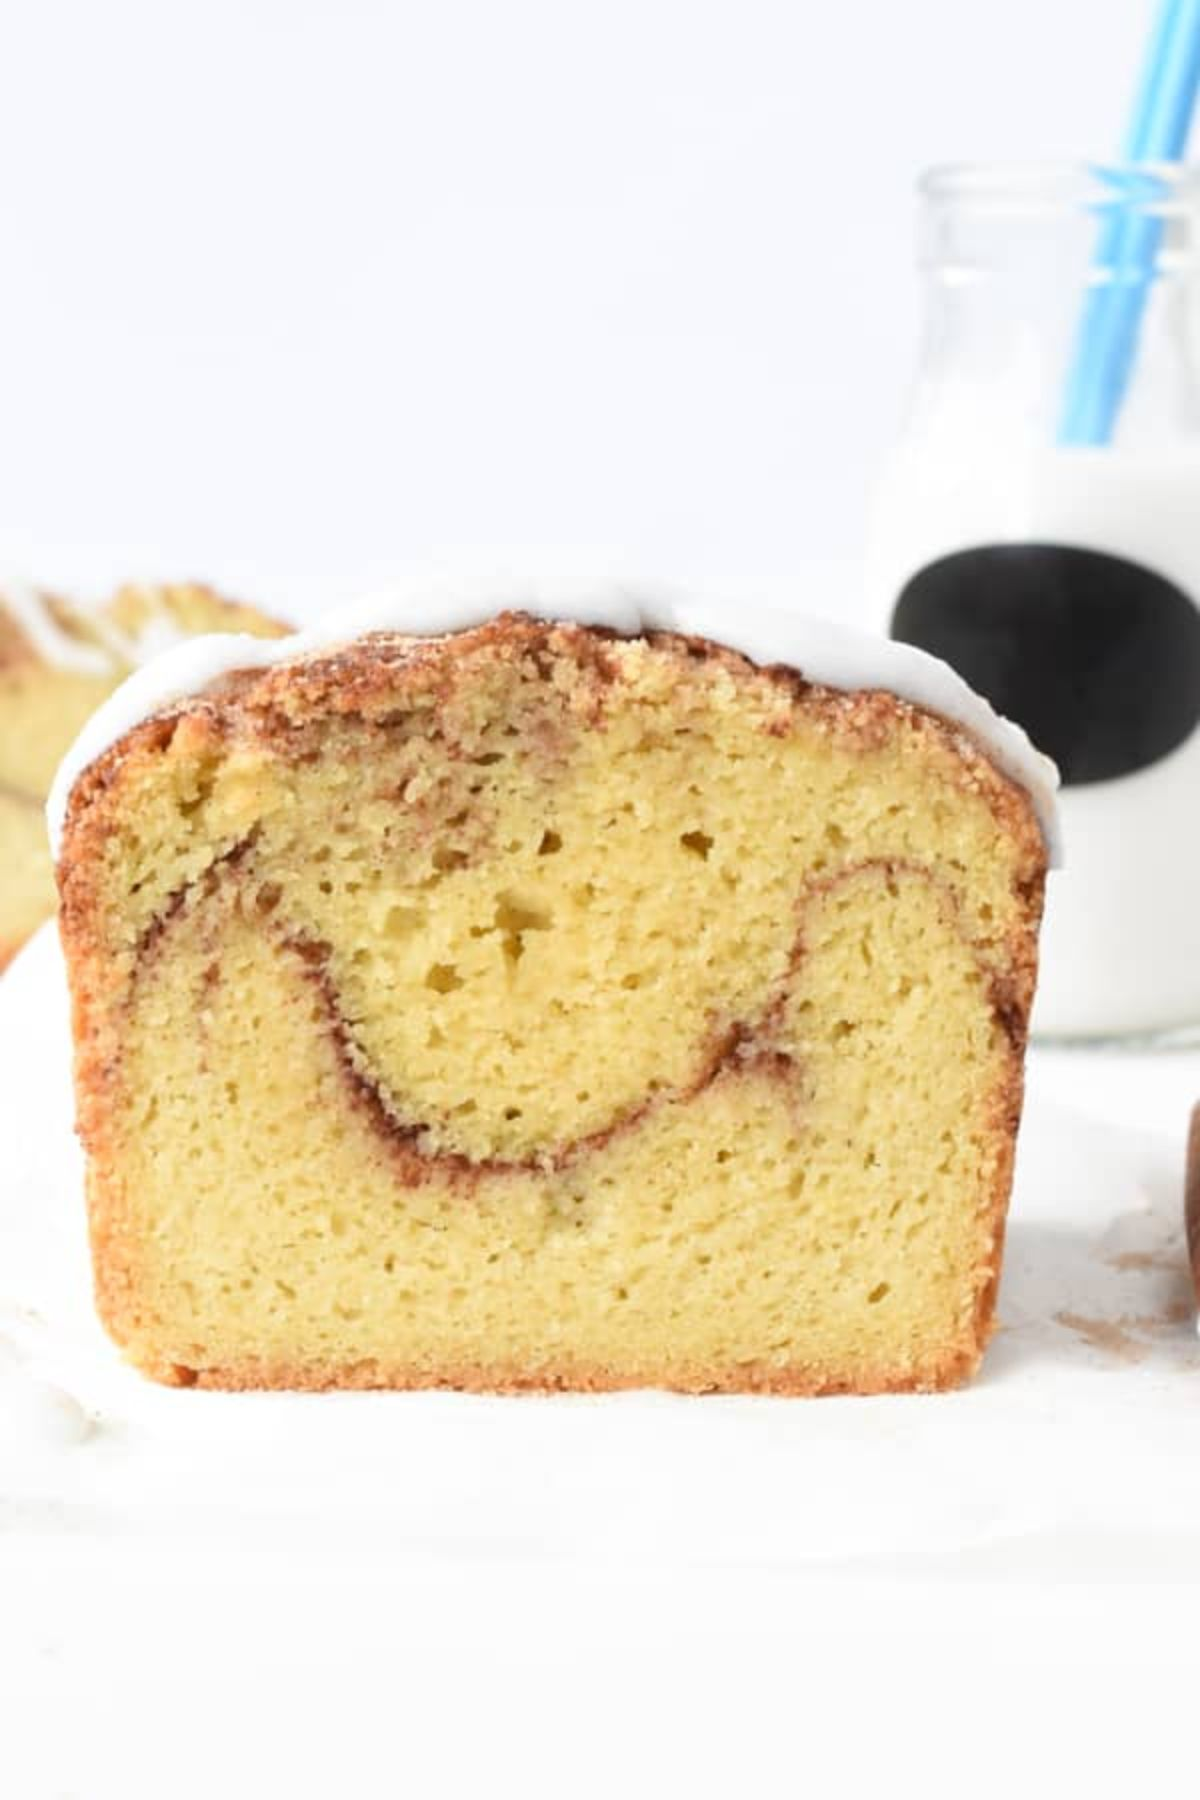 A cut away view of a loaf of cinnamon bread with white icing